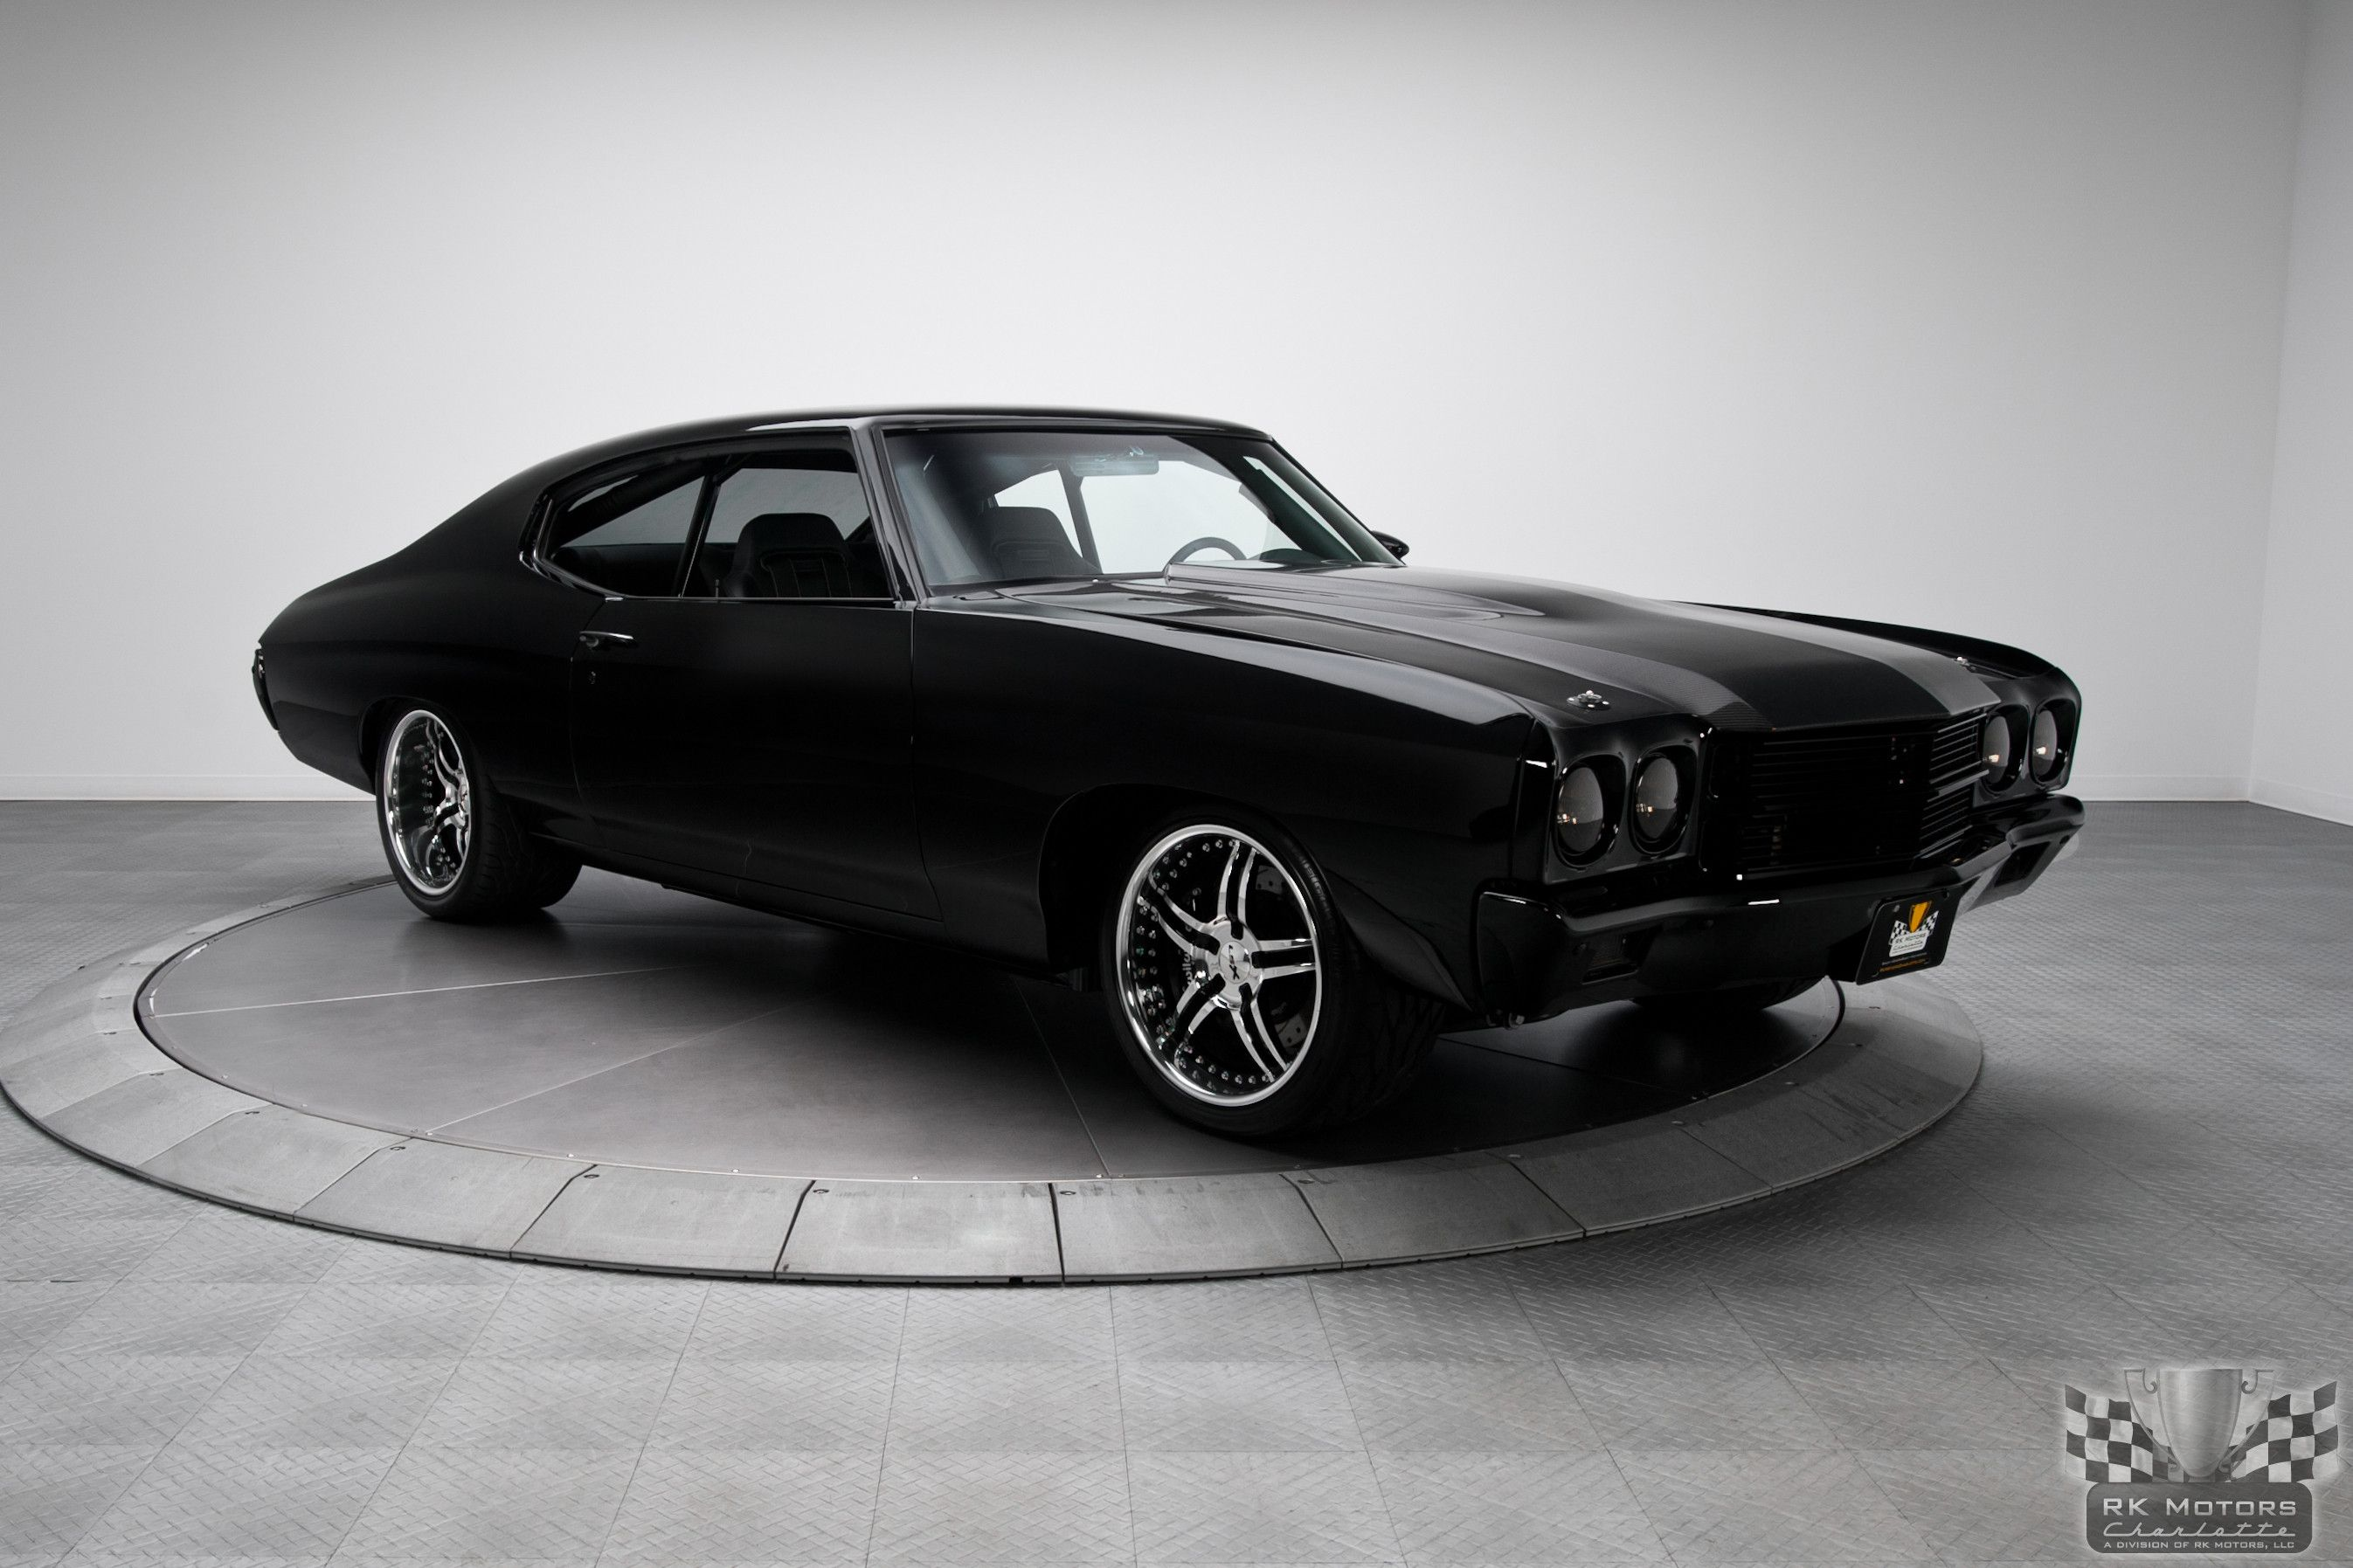 My bucket list car: 72 Chevelle Pro Touring | Cars, General motors ...